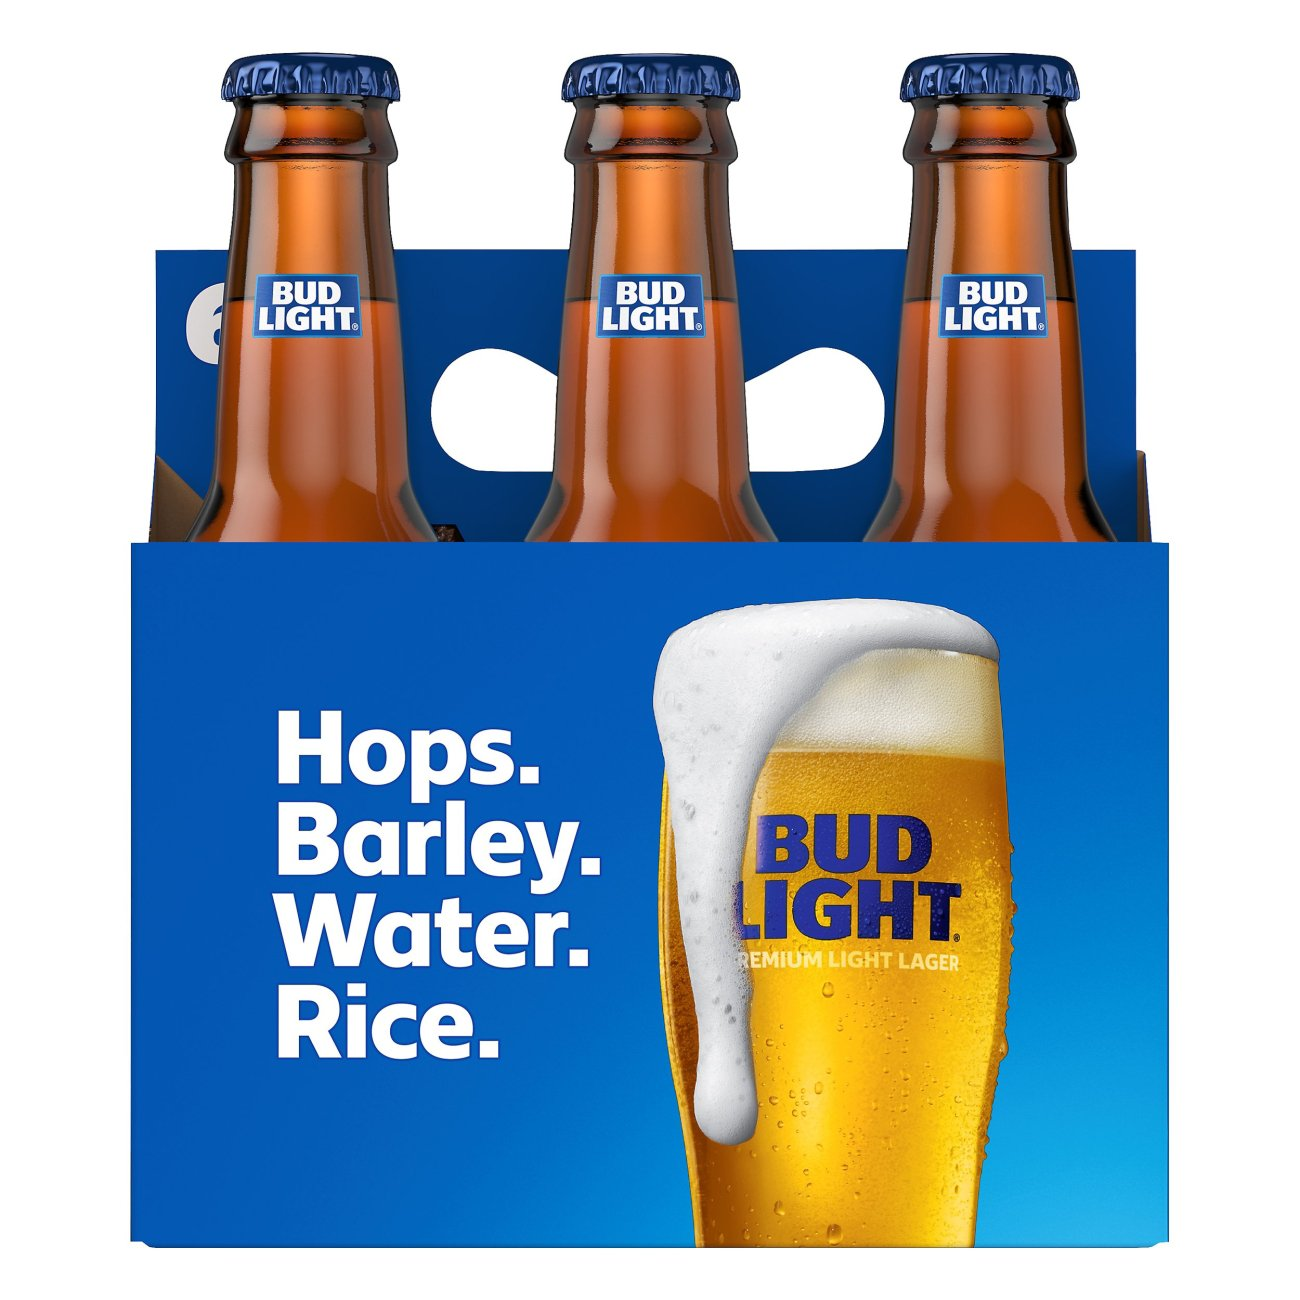 Image Result For Bud Light Beer Pictures